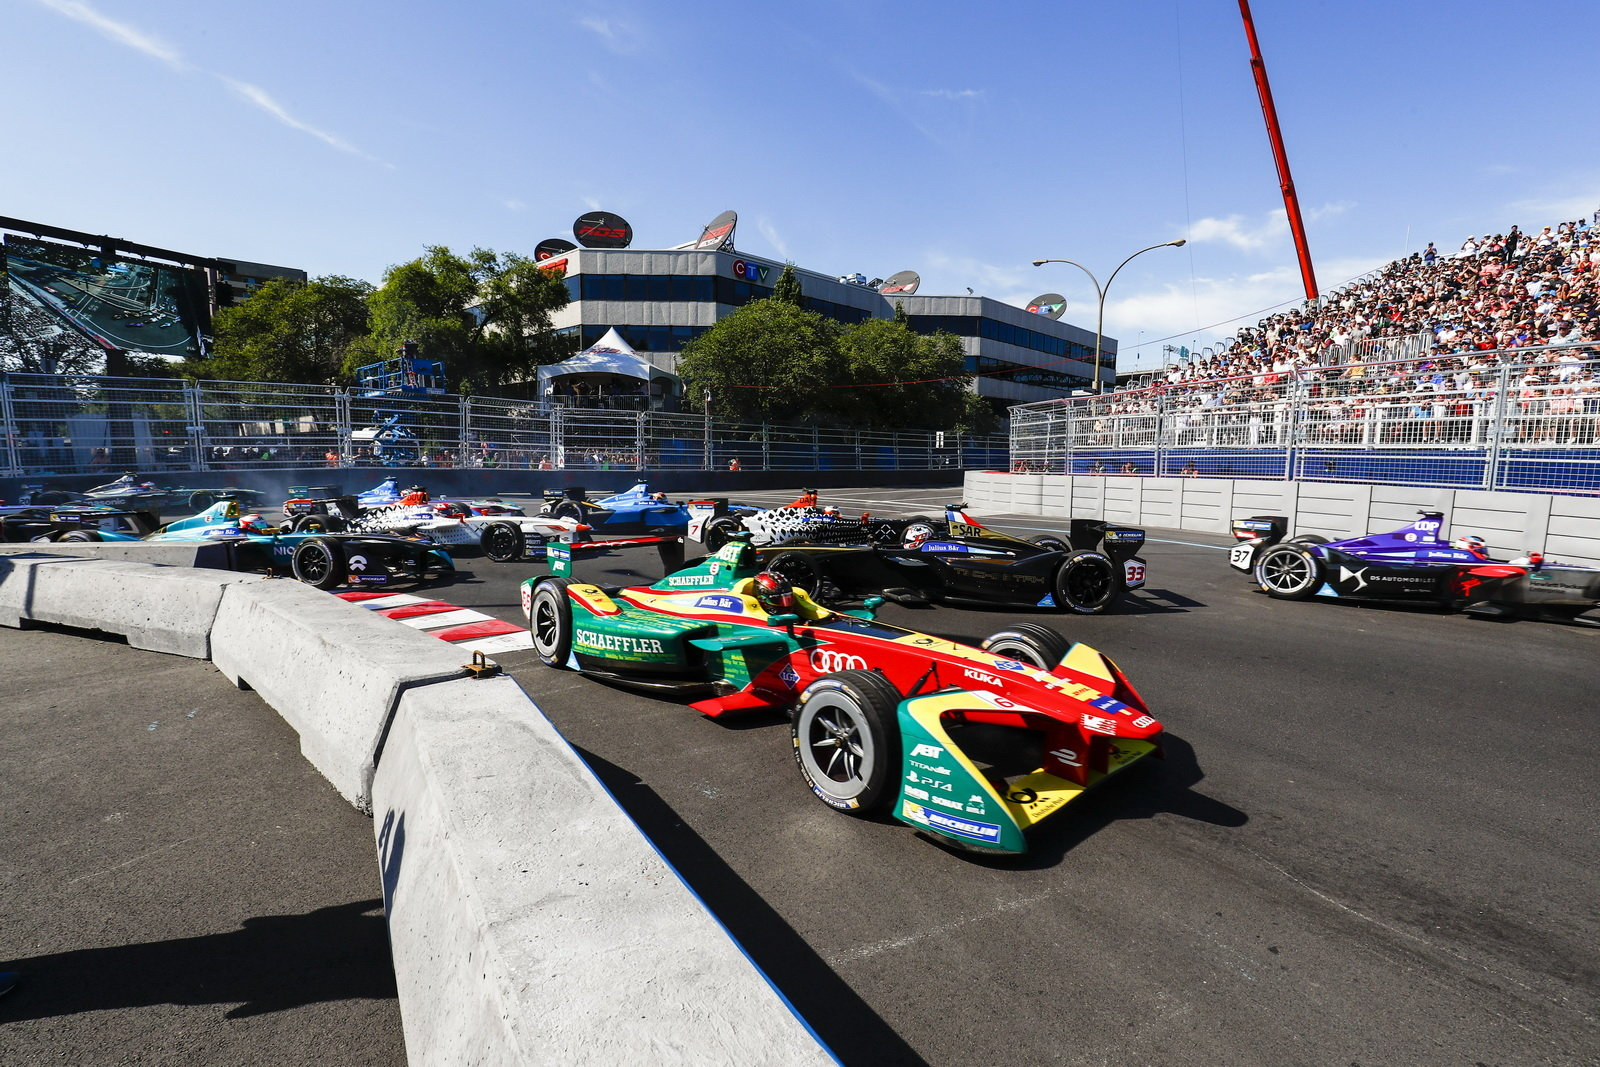 foto formula e di grassi campione 2017. Black Bedroom Furniture Sets. Home Design Ideas